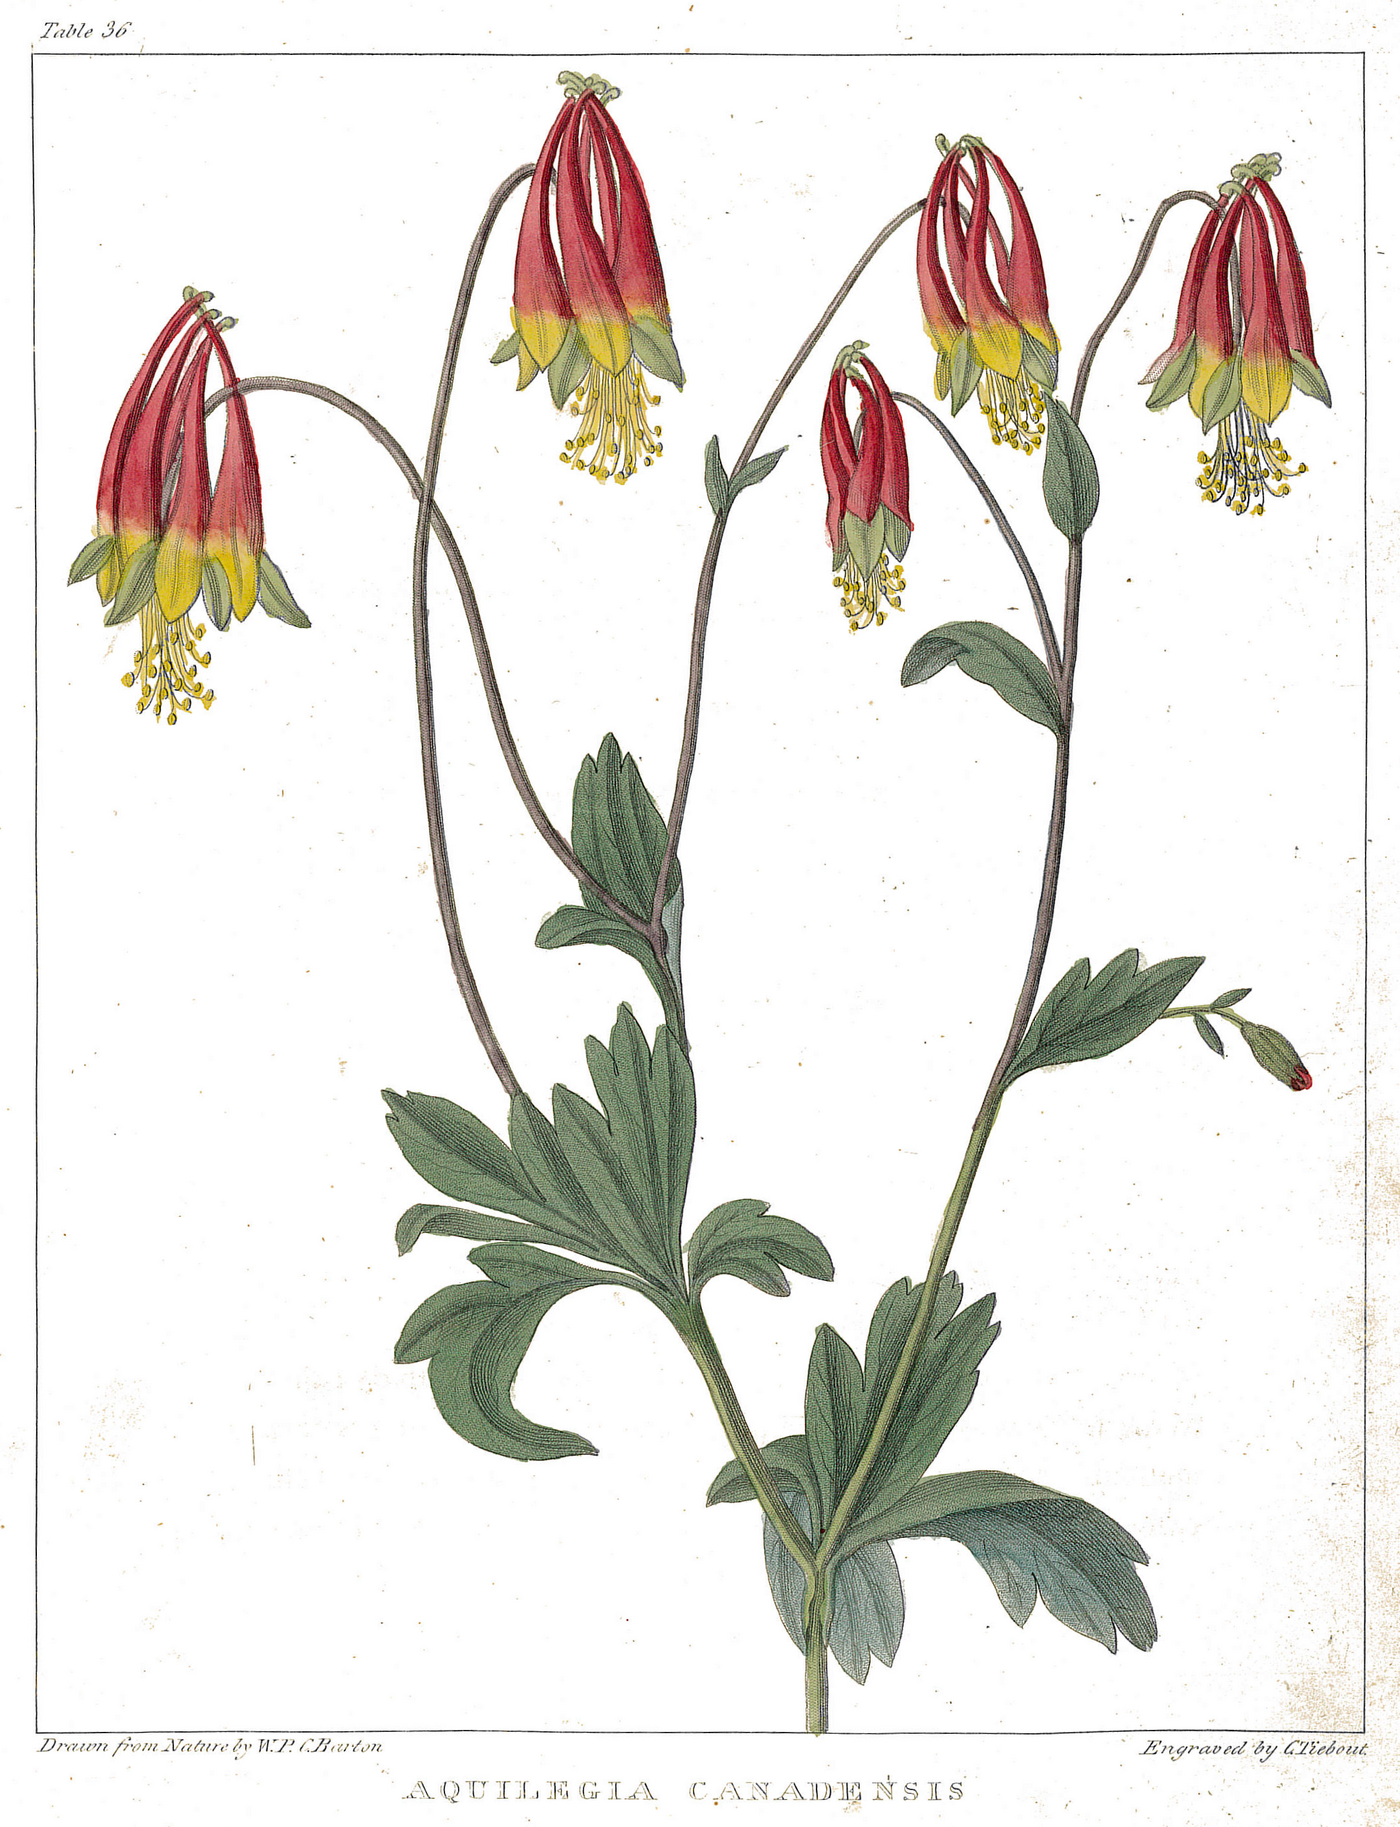 Botanical illustration of red columbine showing two stems with five blooms